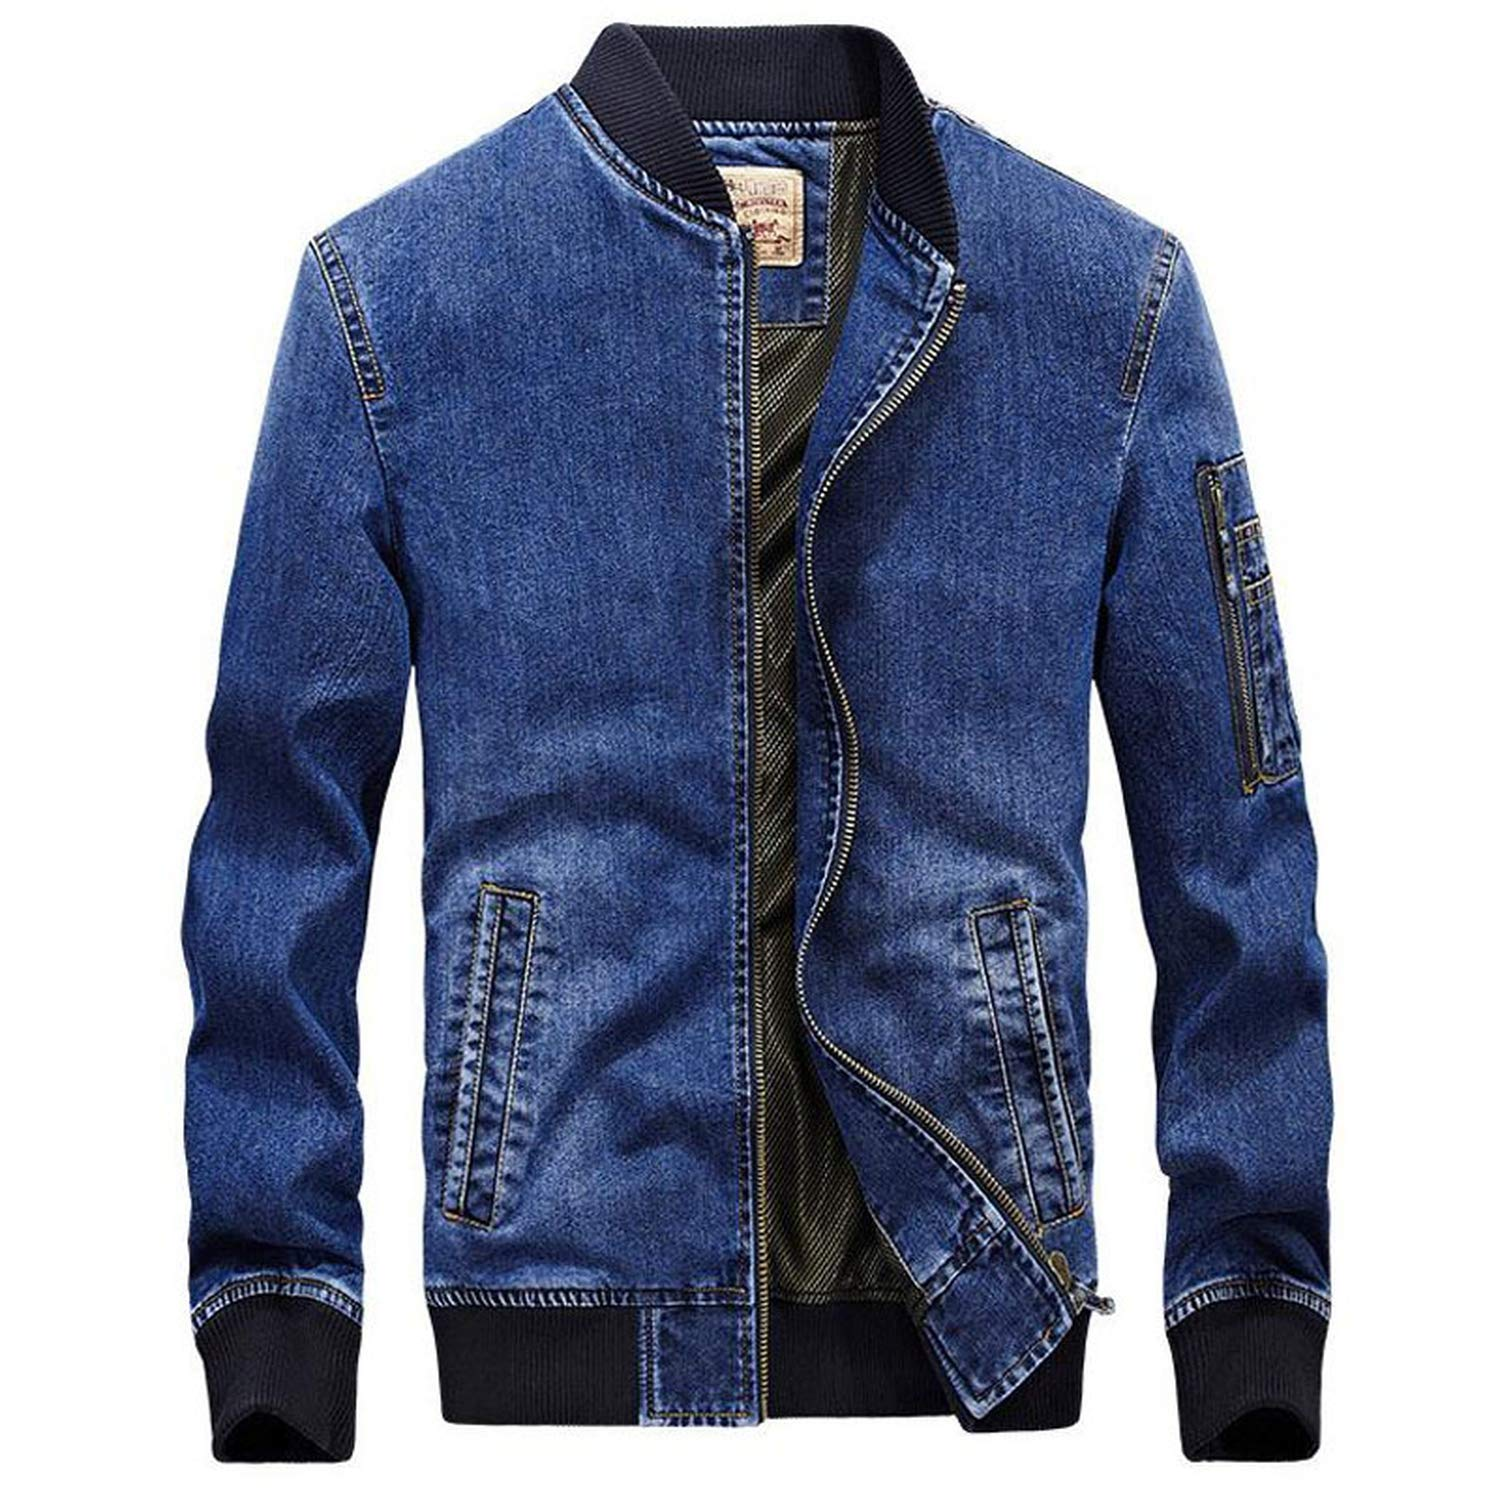 Joyhul Men Jeans Jacket Bomber Denim Jackets Mens Casual ...